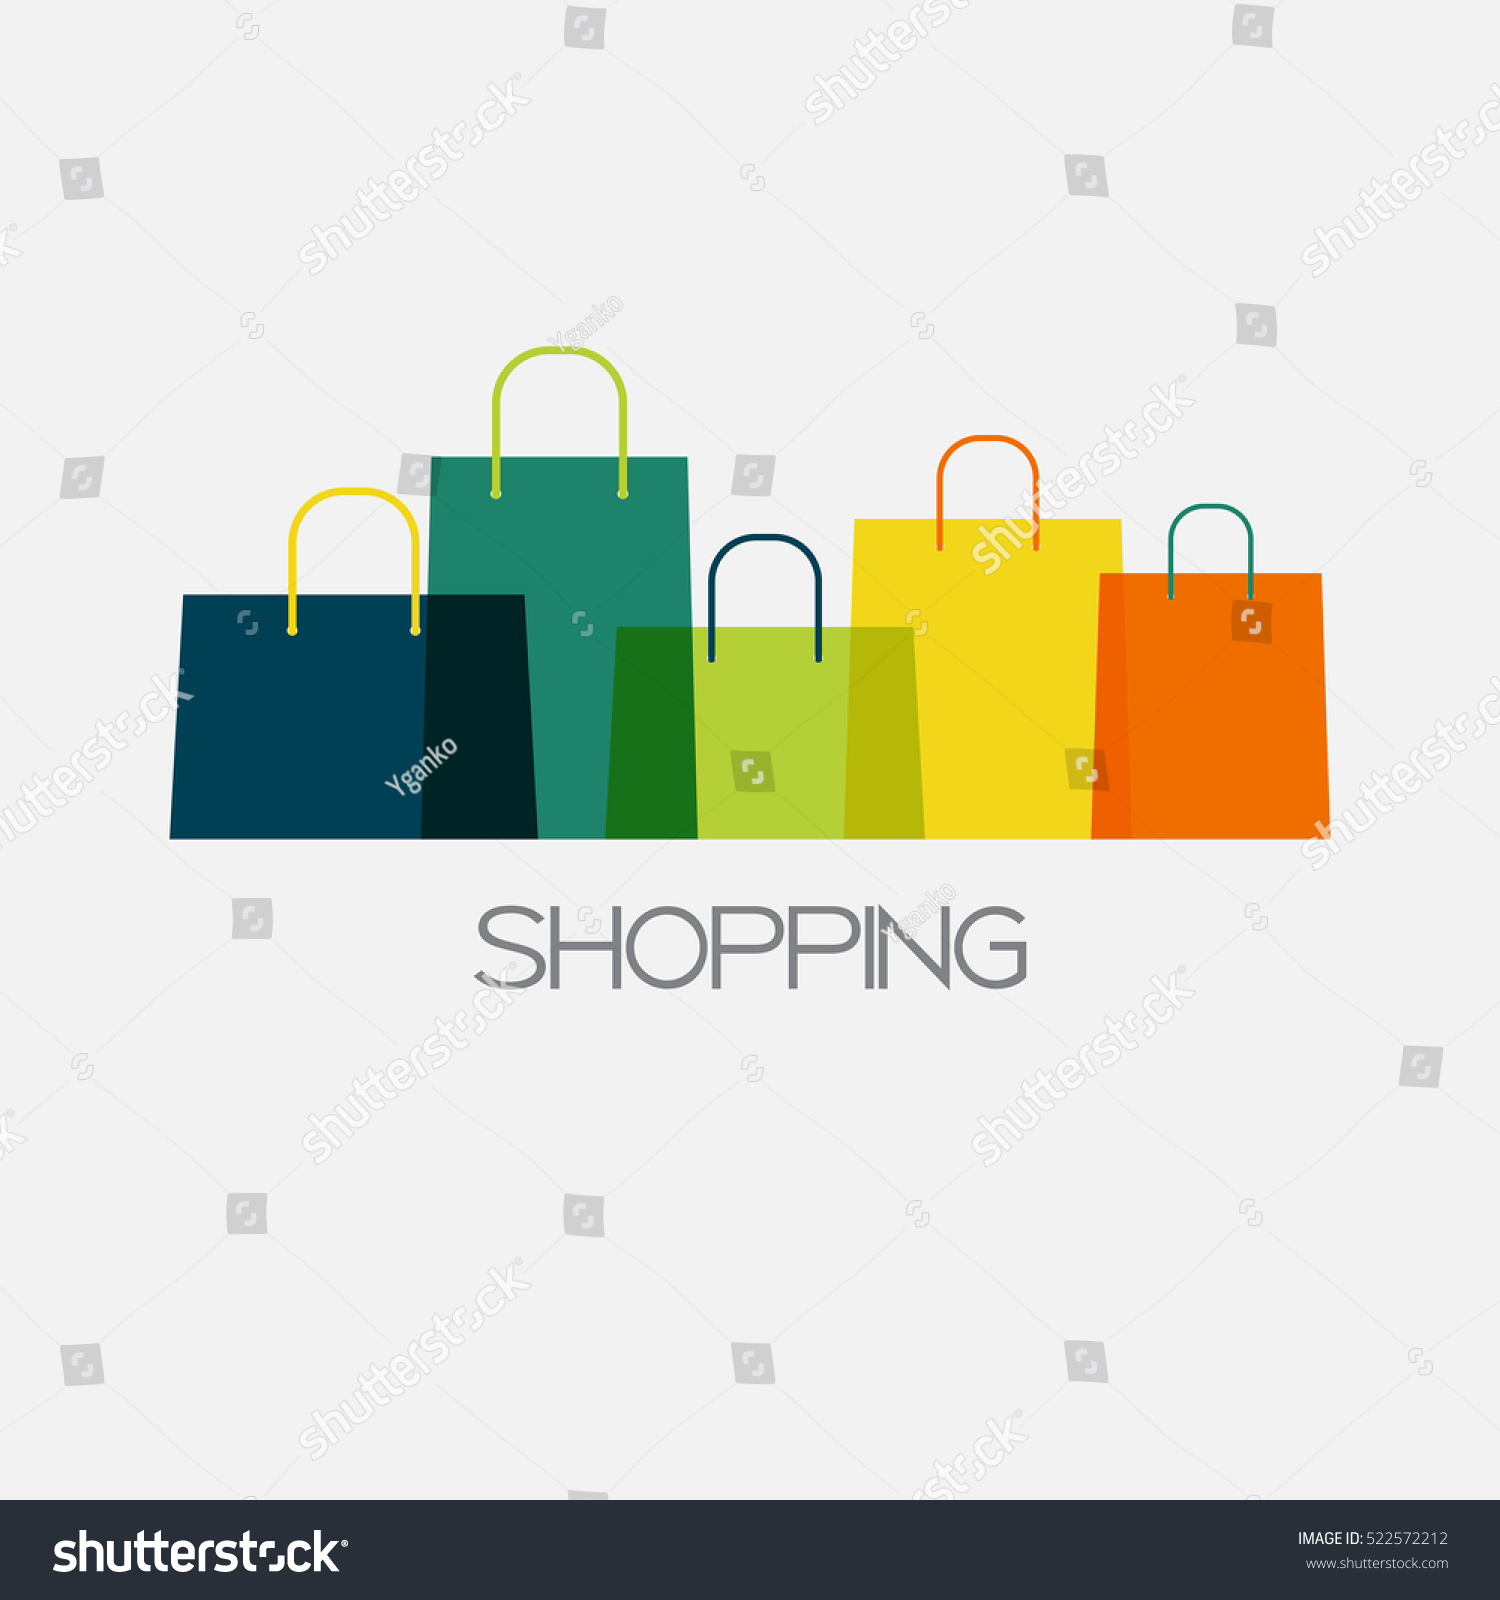 shopping bag design background vector illustration のベクター画像